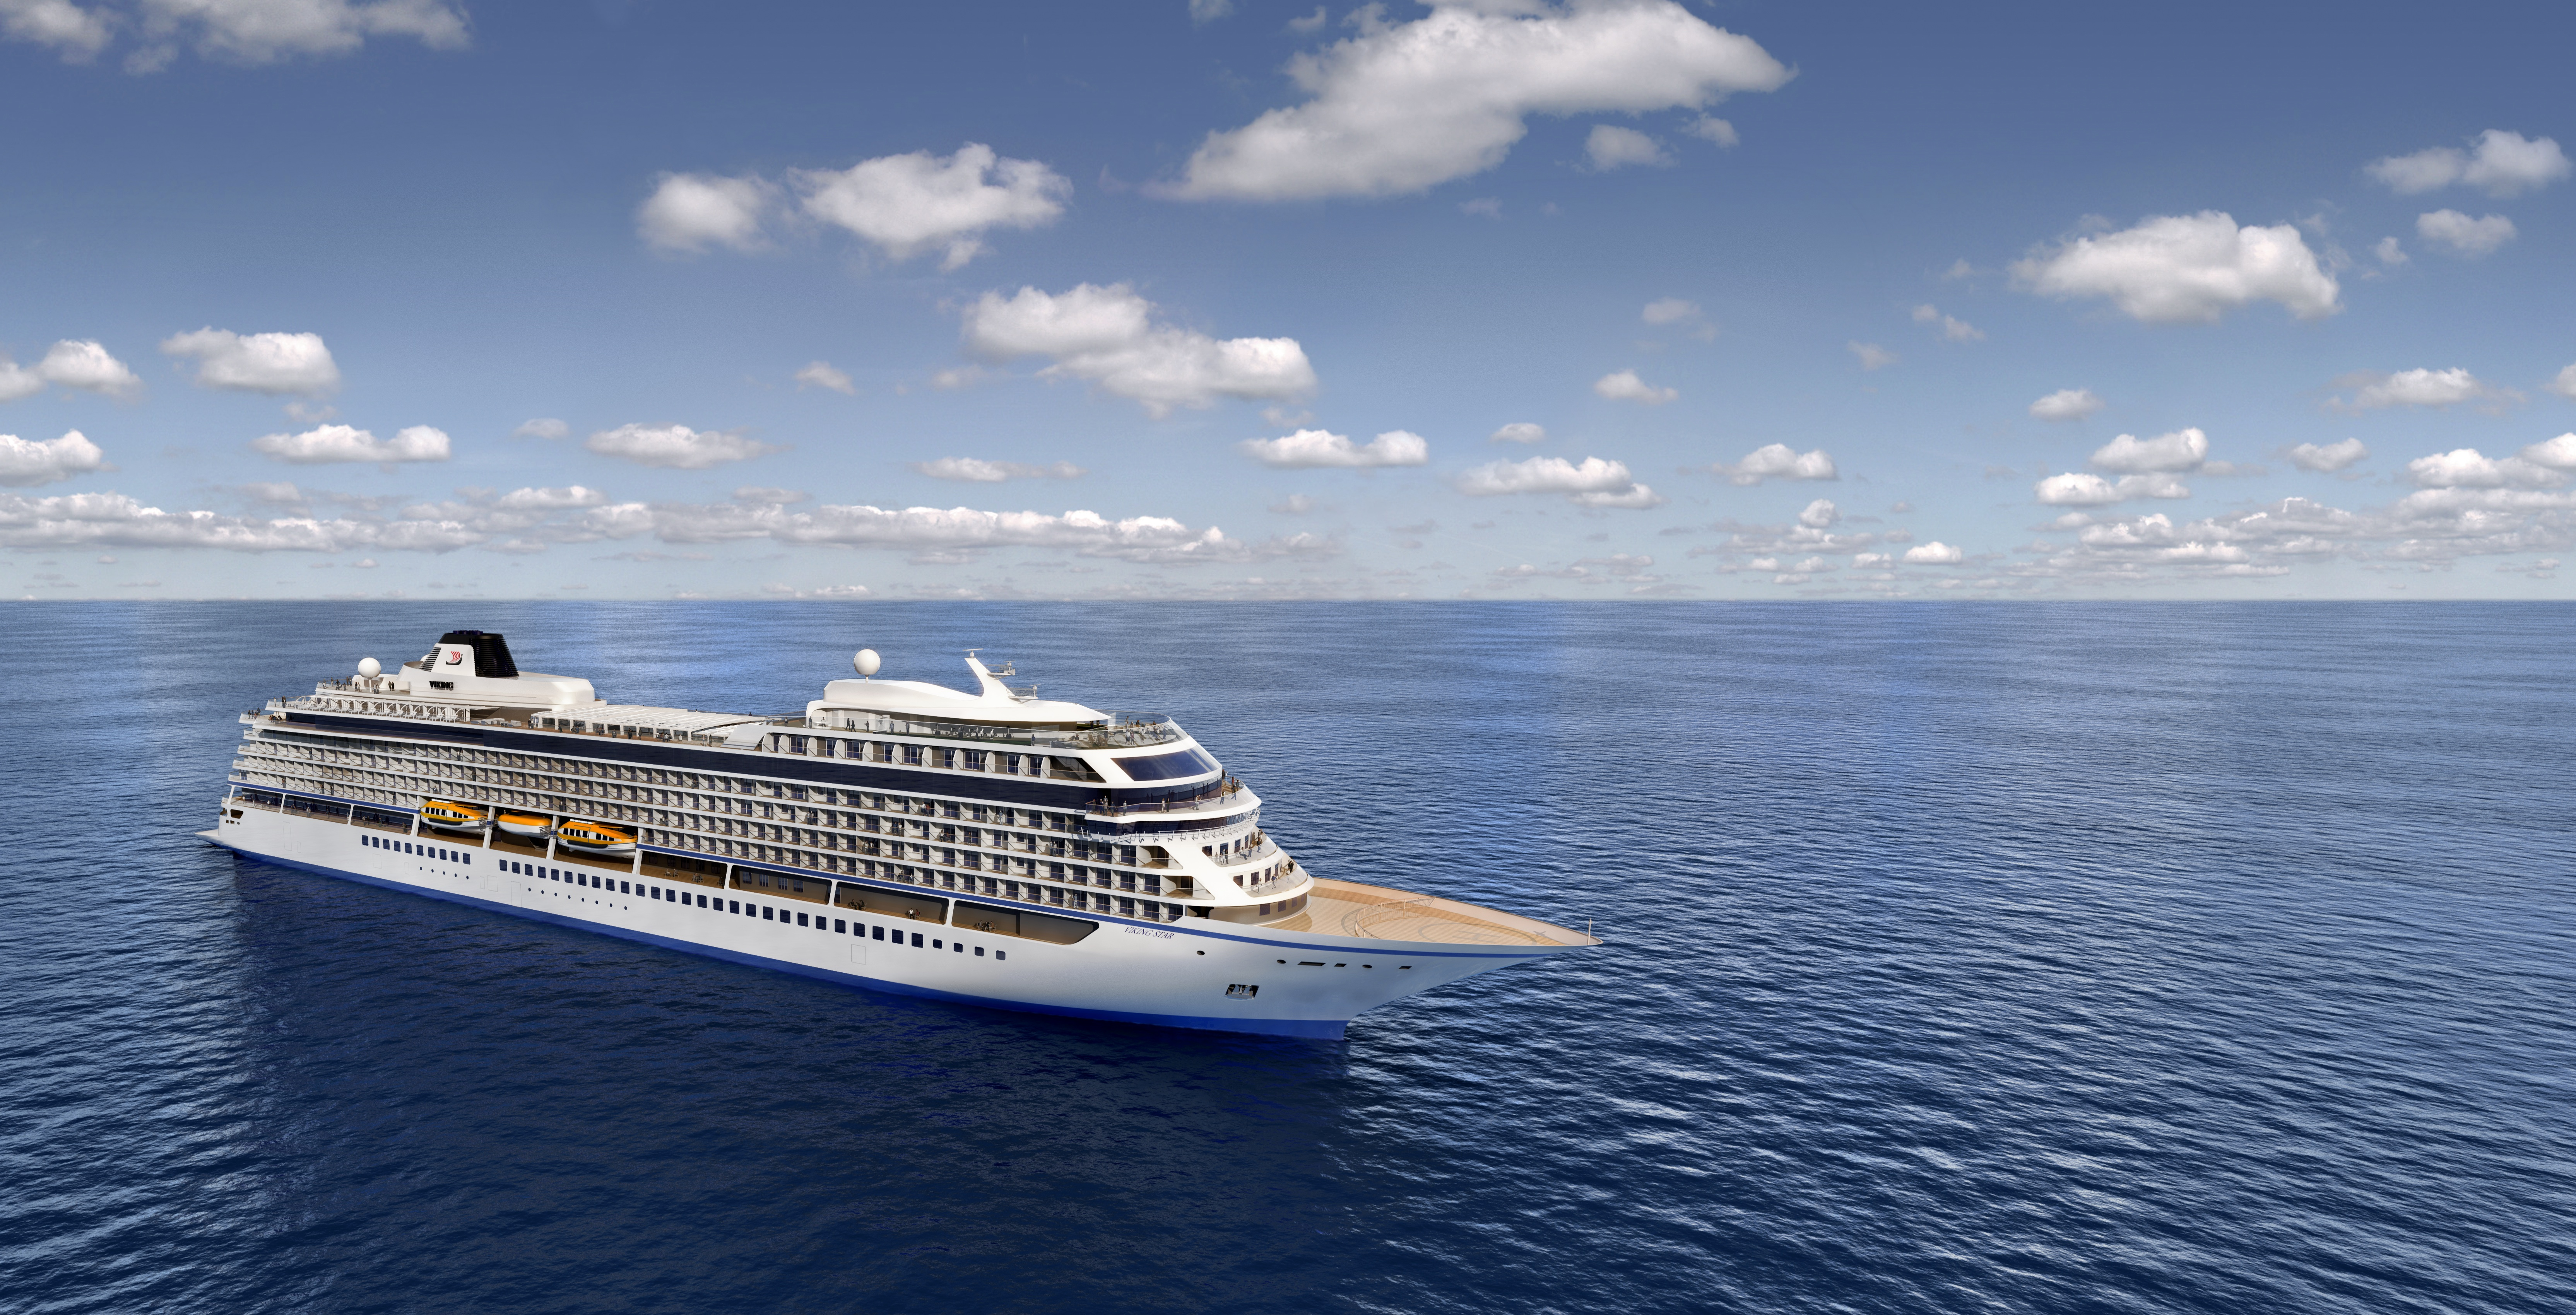 Star achiever: Viking's new ocean-going ship, due to launch next year